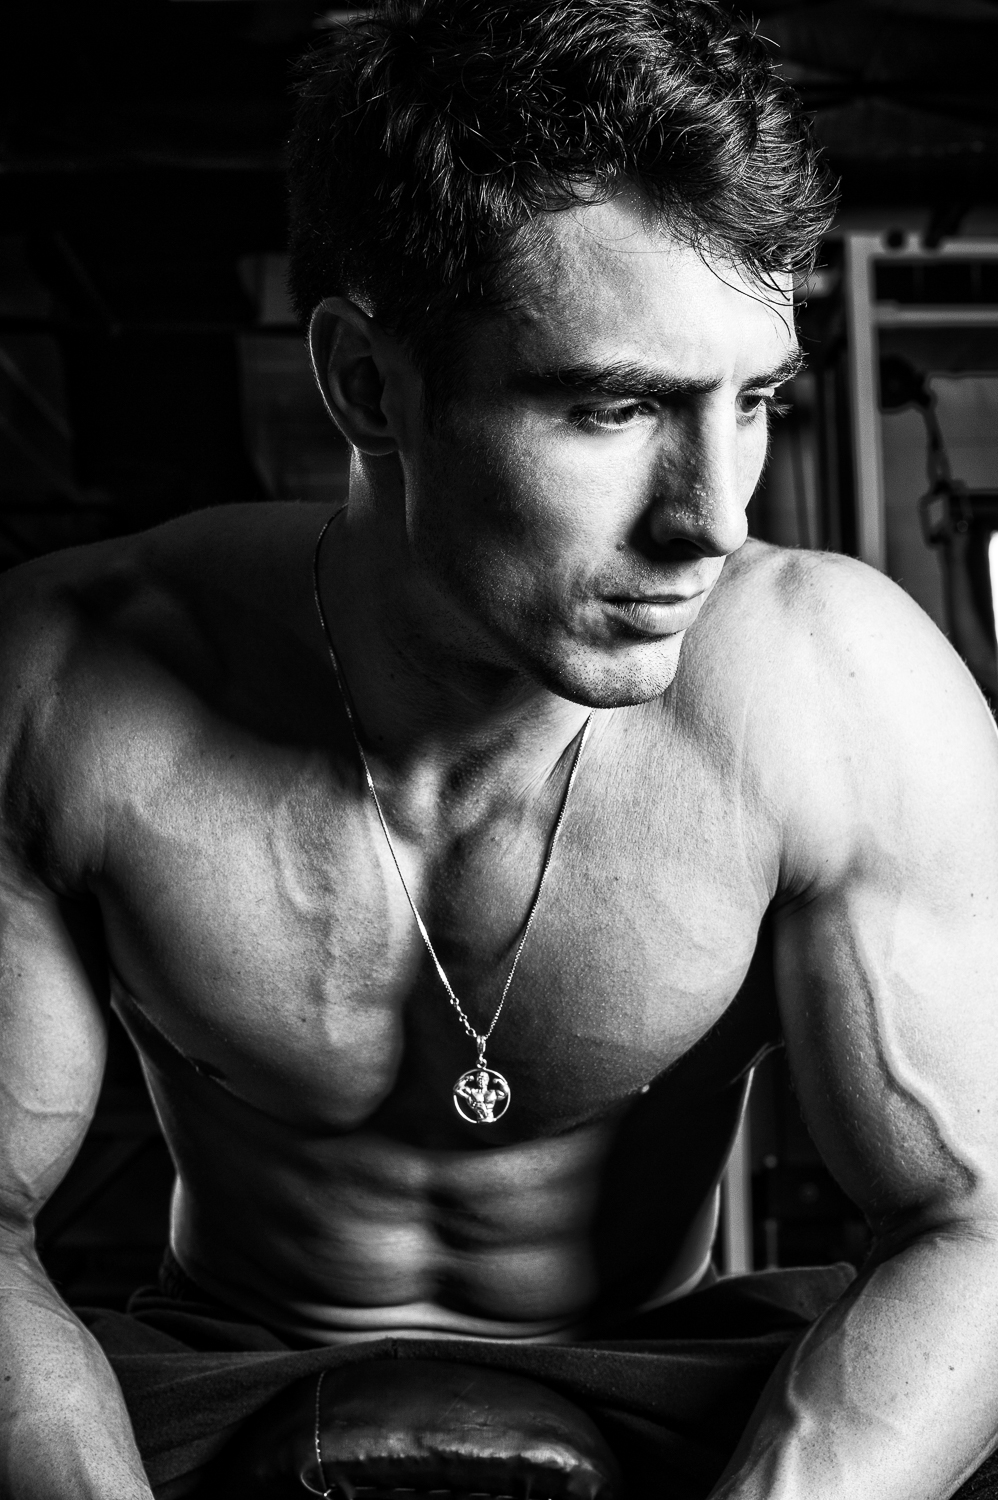 Hamilton Toronto Fitness Photographer - Marek Michalek - Rob Monroe Gym Shoot.jpg